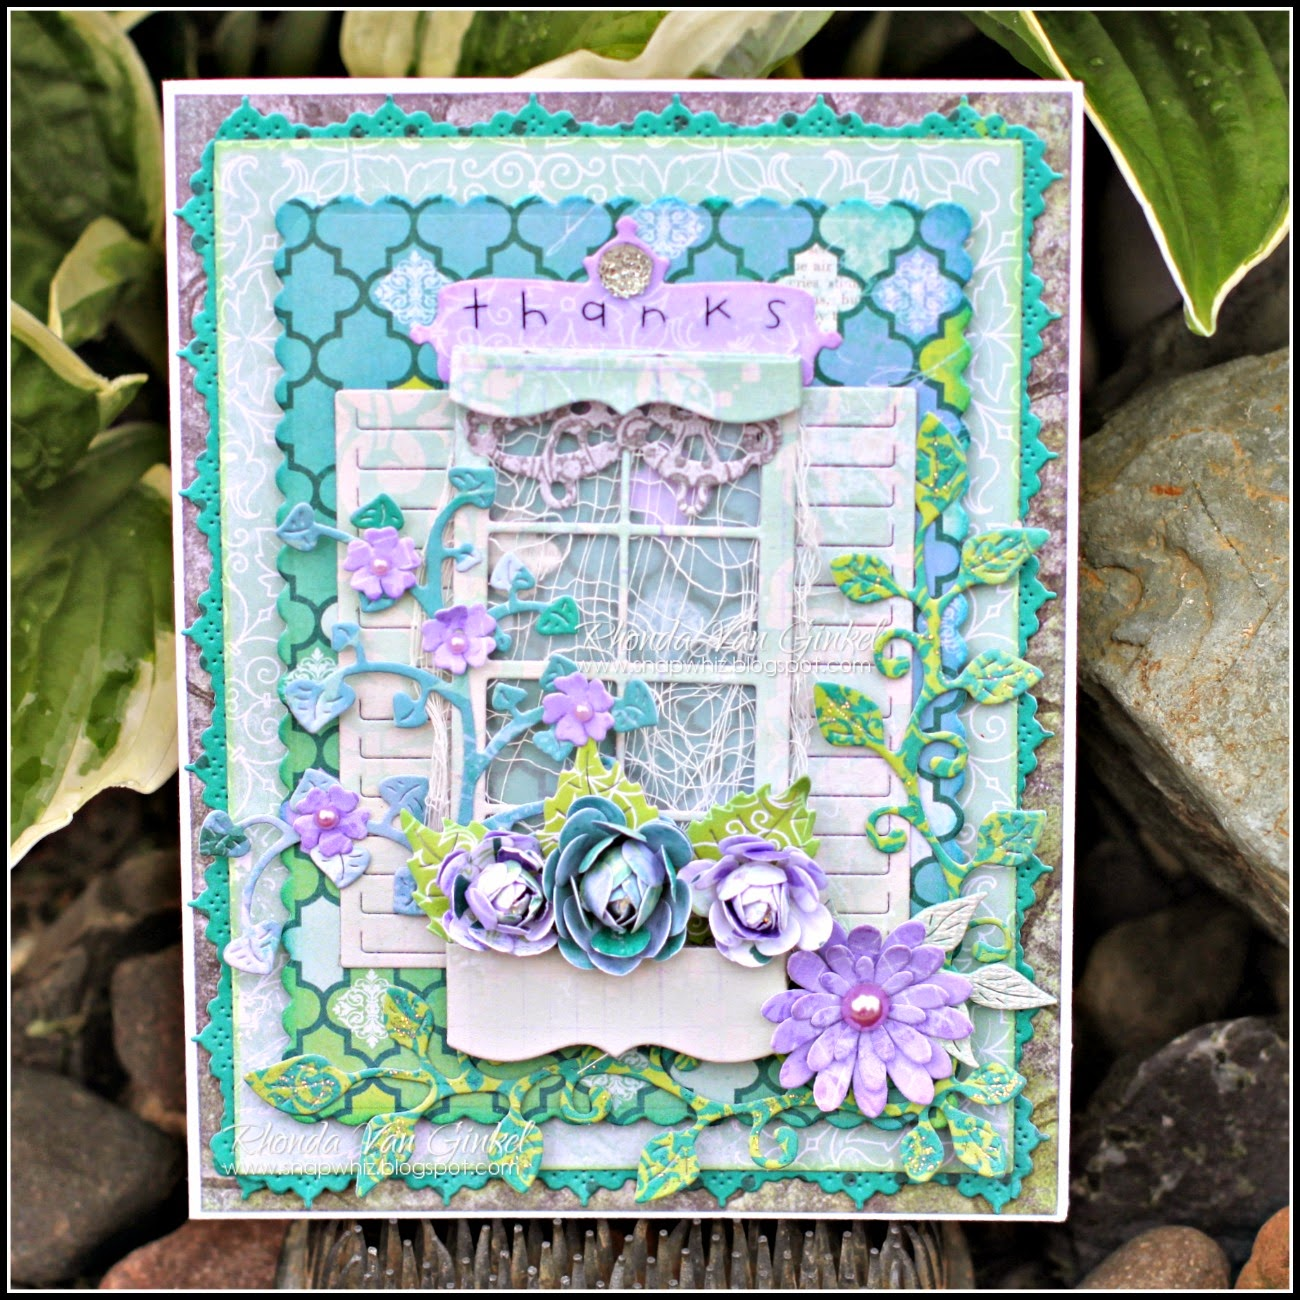 http://snapwhiz.blogspot.com/2014/06/spring-inspiration-with-cheery-lynn.html